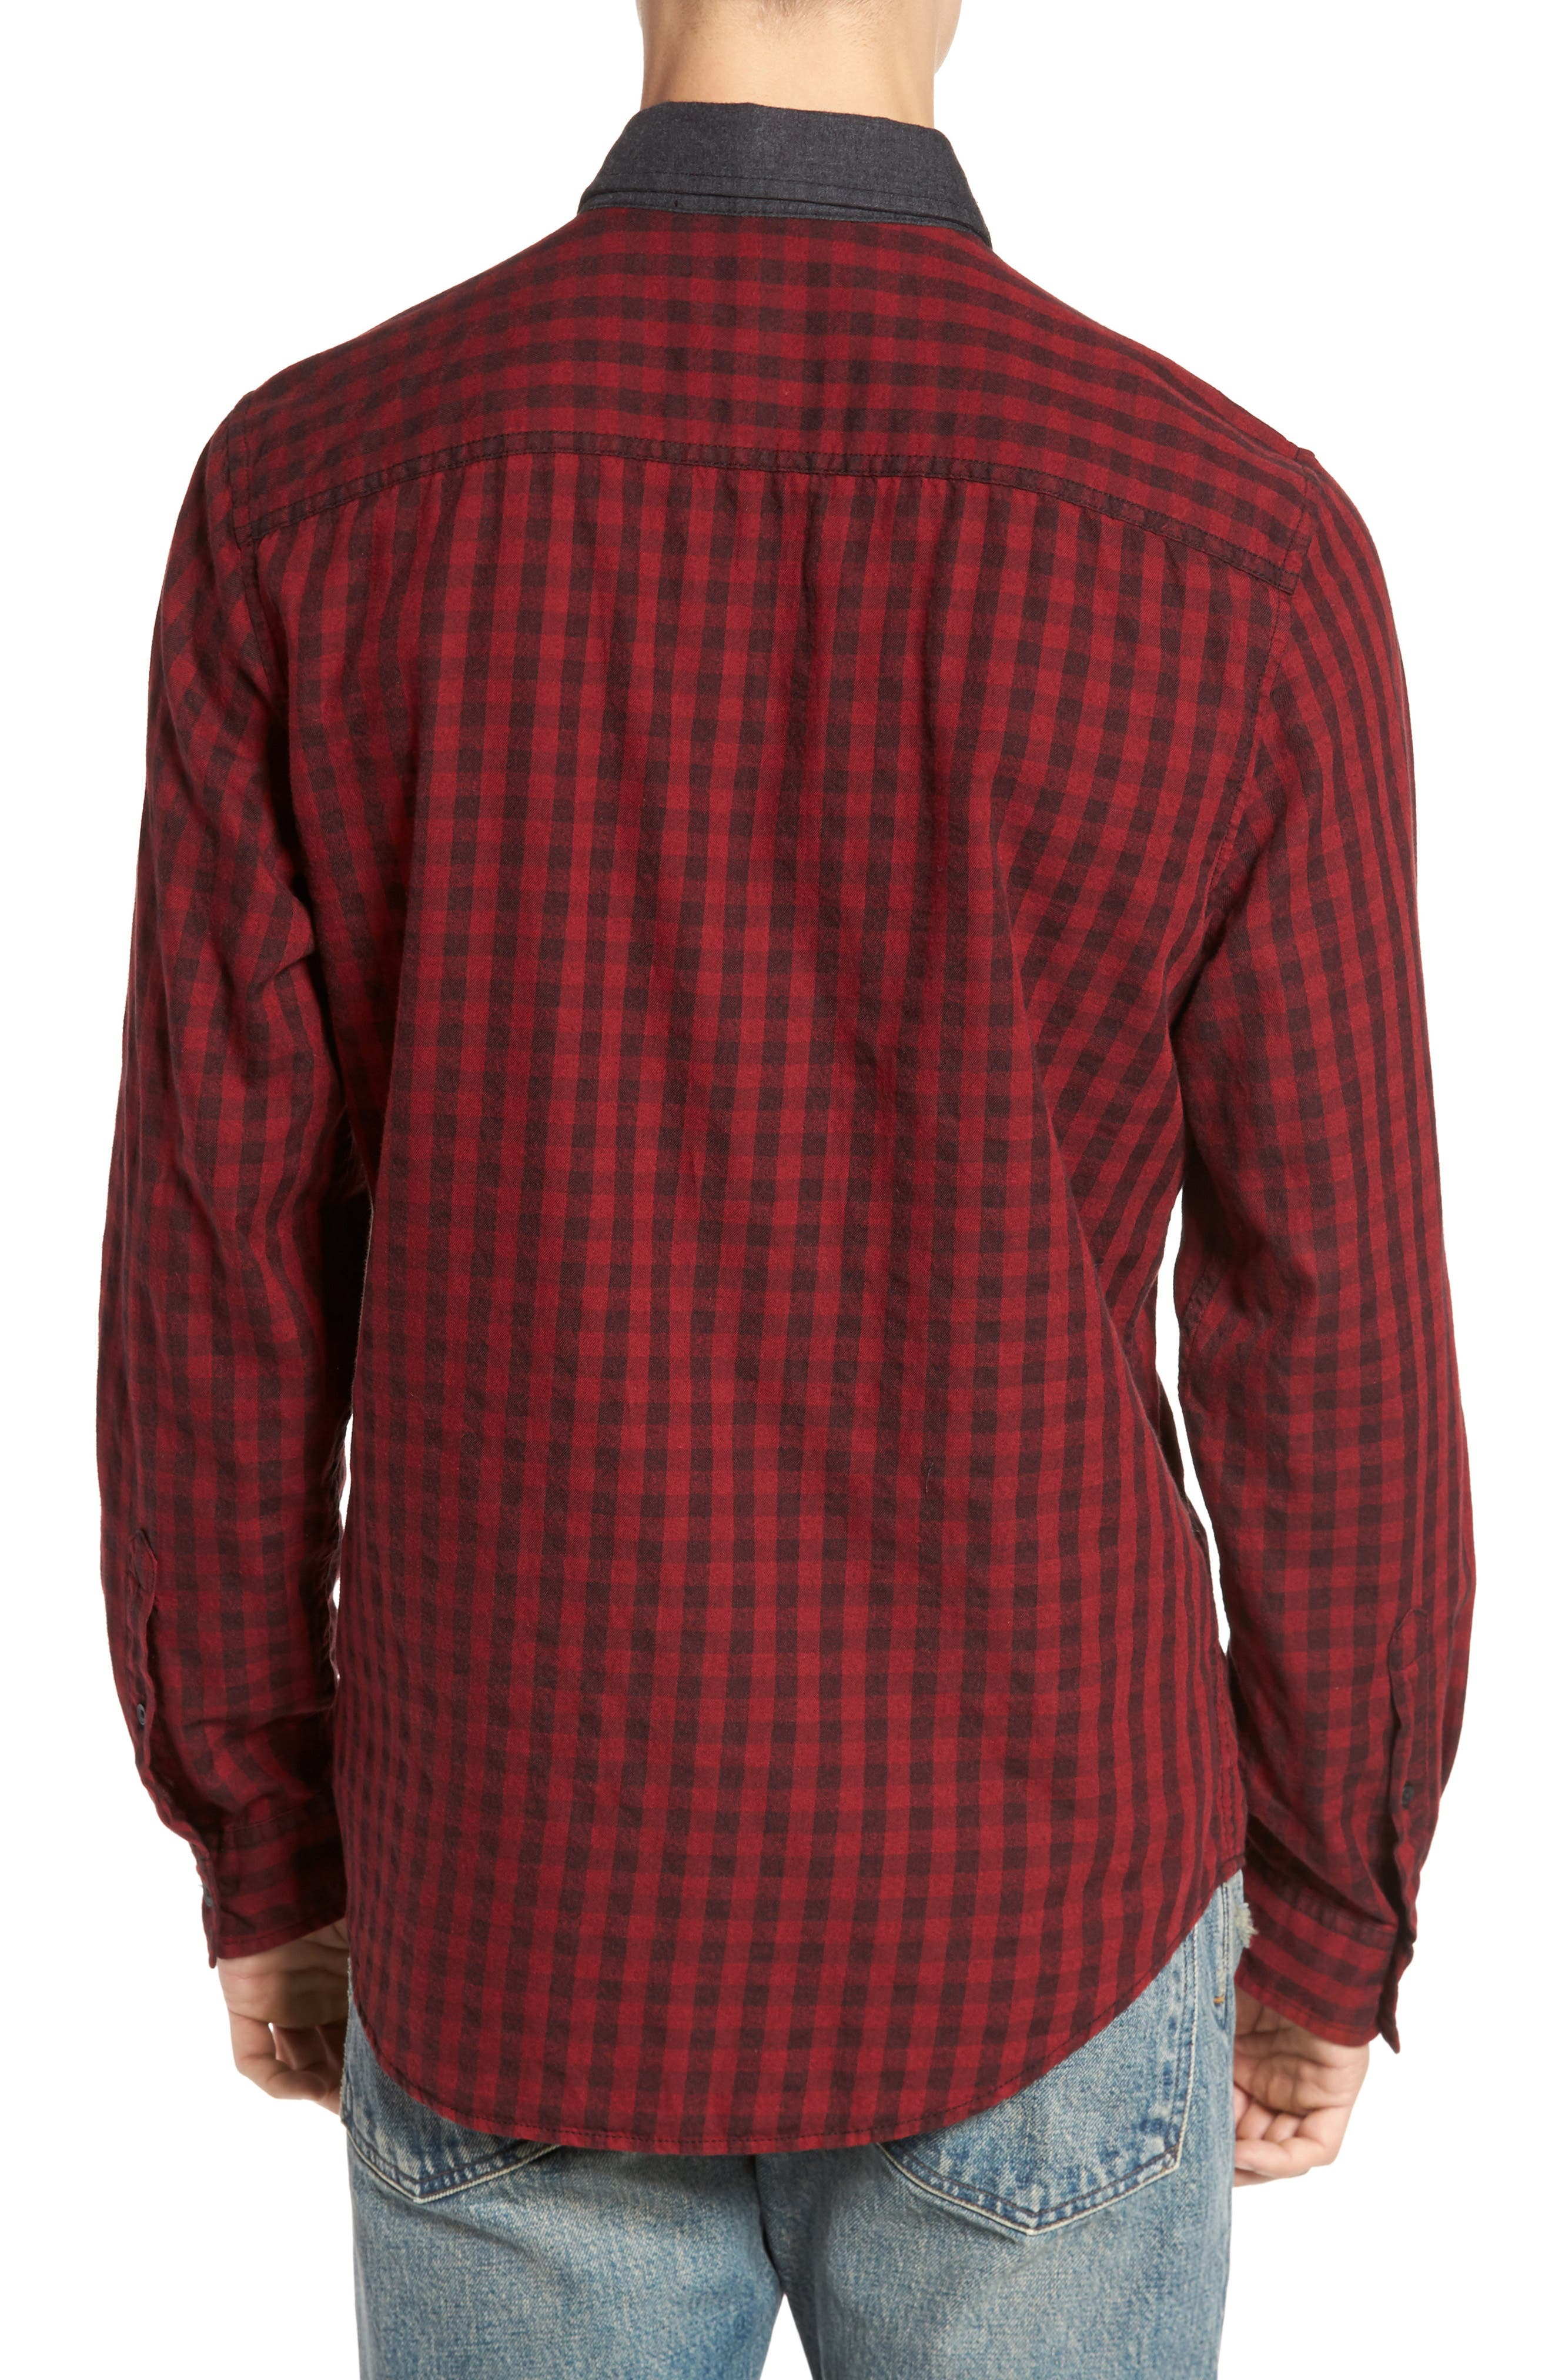 Barn Flannel Shirt,                             Alternate thumbnail 2, color,                             621